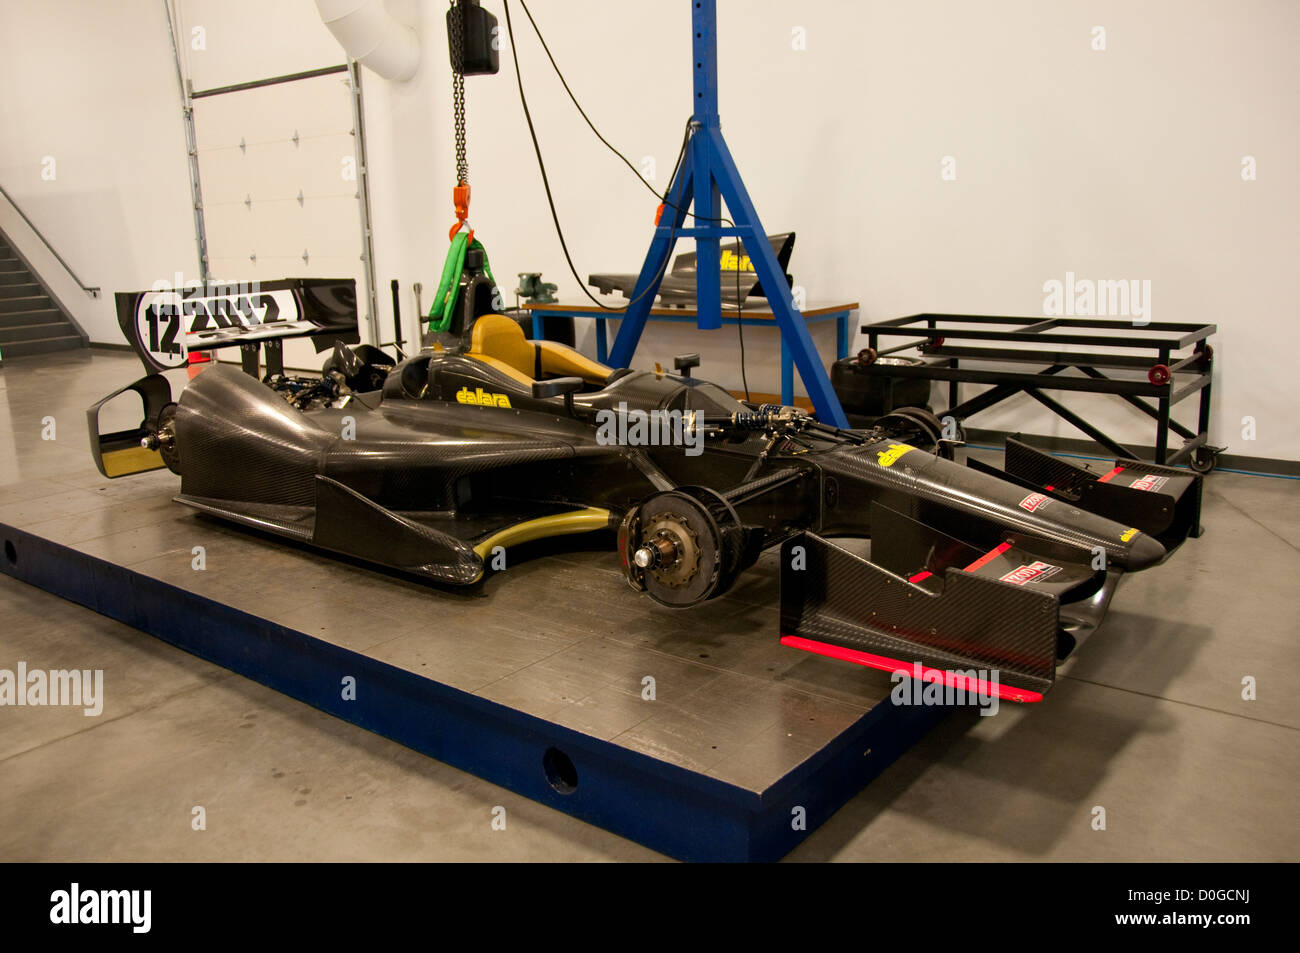 Usa indiana indianapolis motor speedway indy 500 car for Motor manufacturers in usa